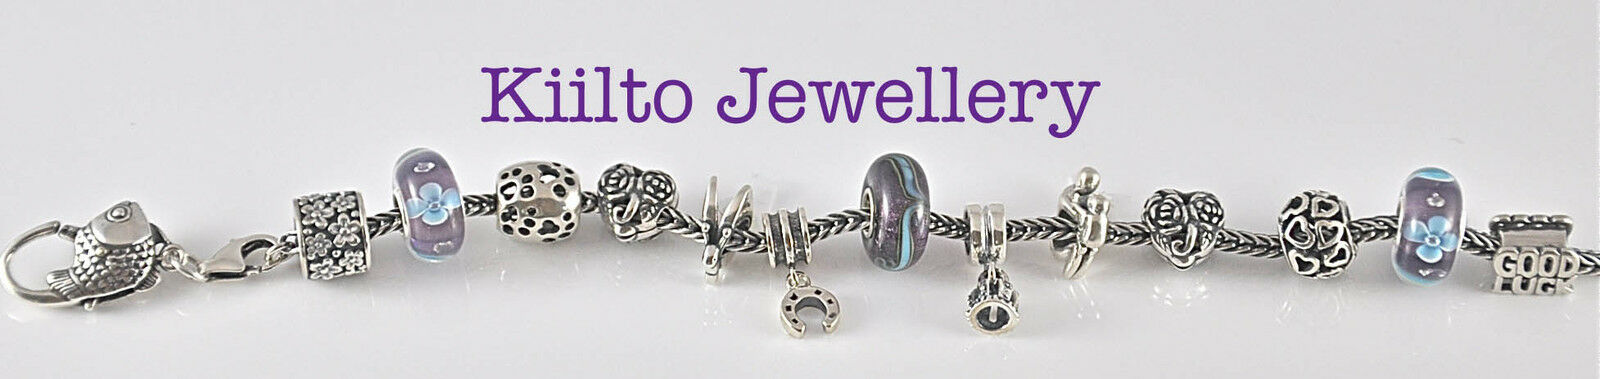 Kiilto Jewellery UK